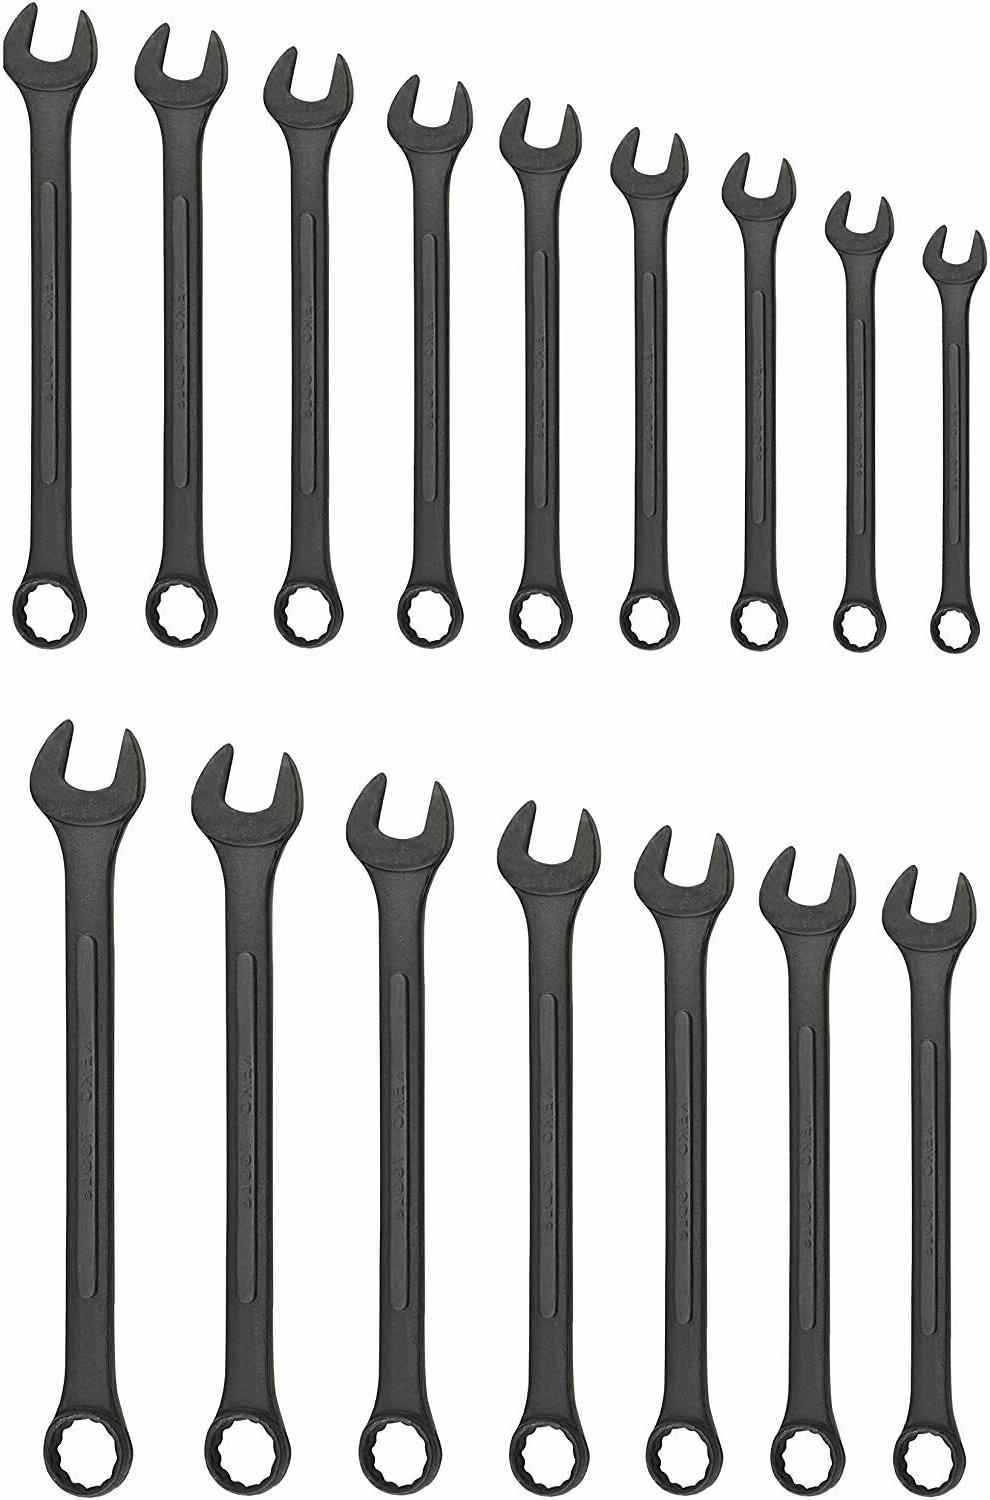 03575a raised panel combo wrench